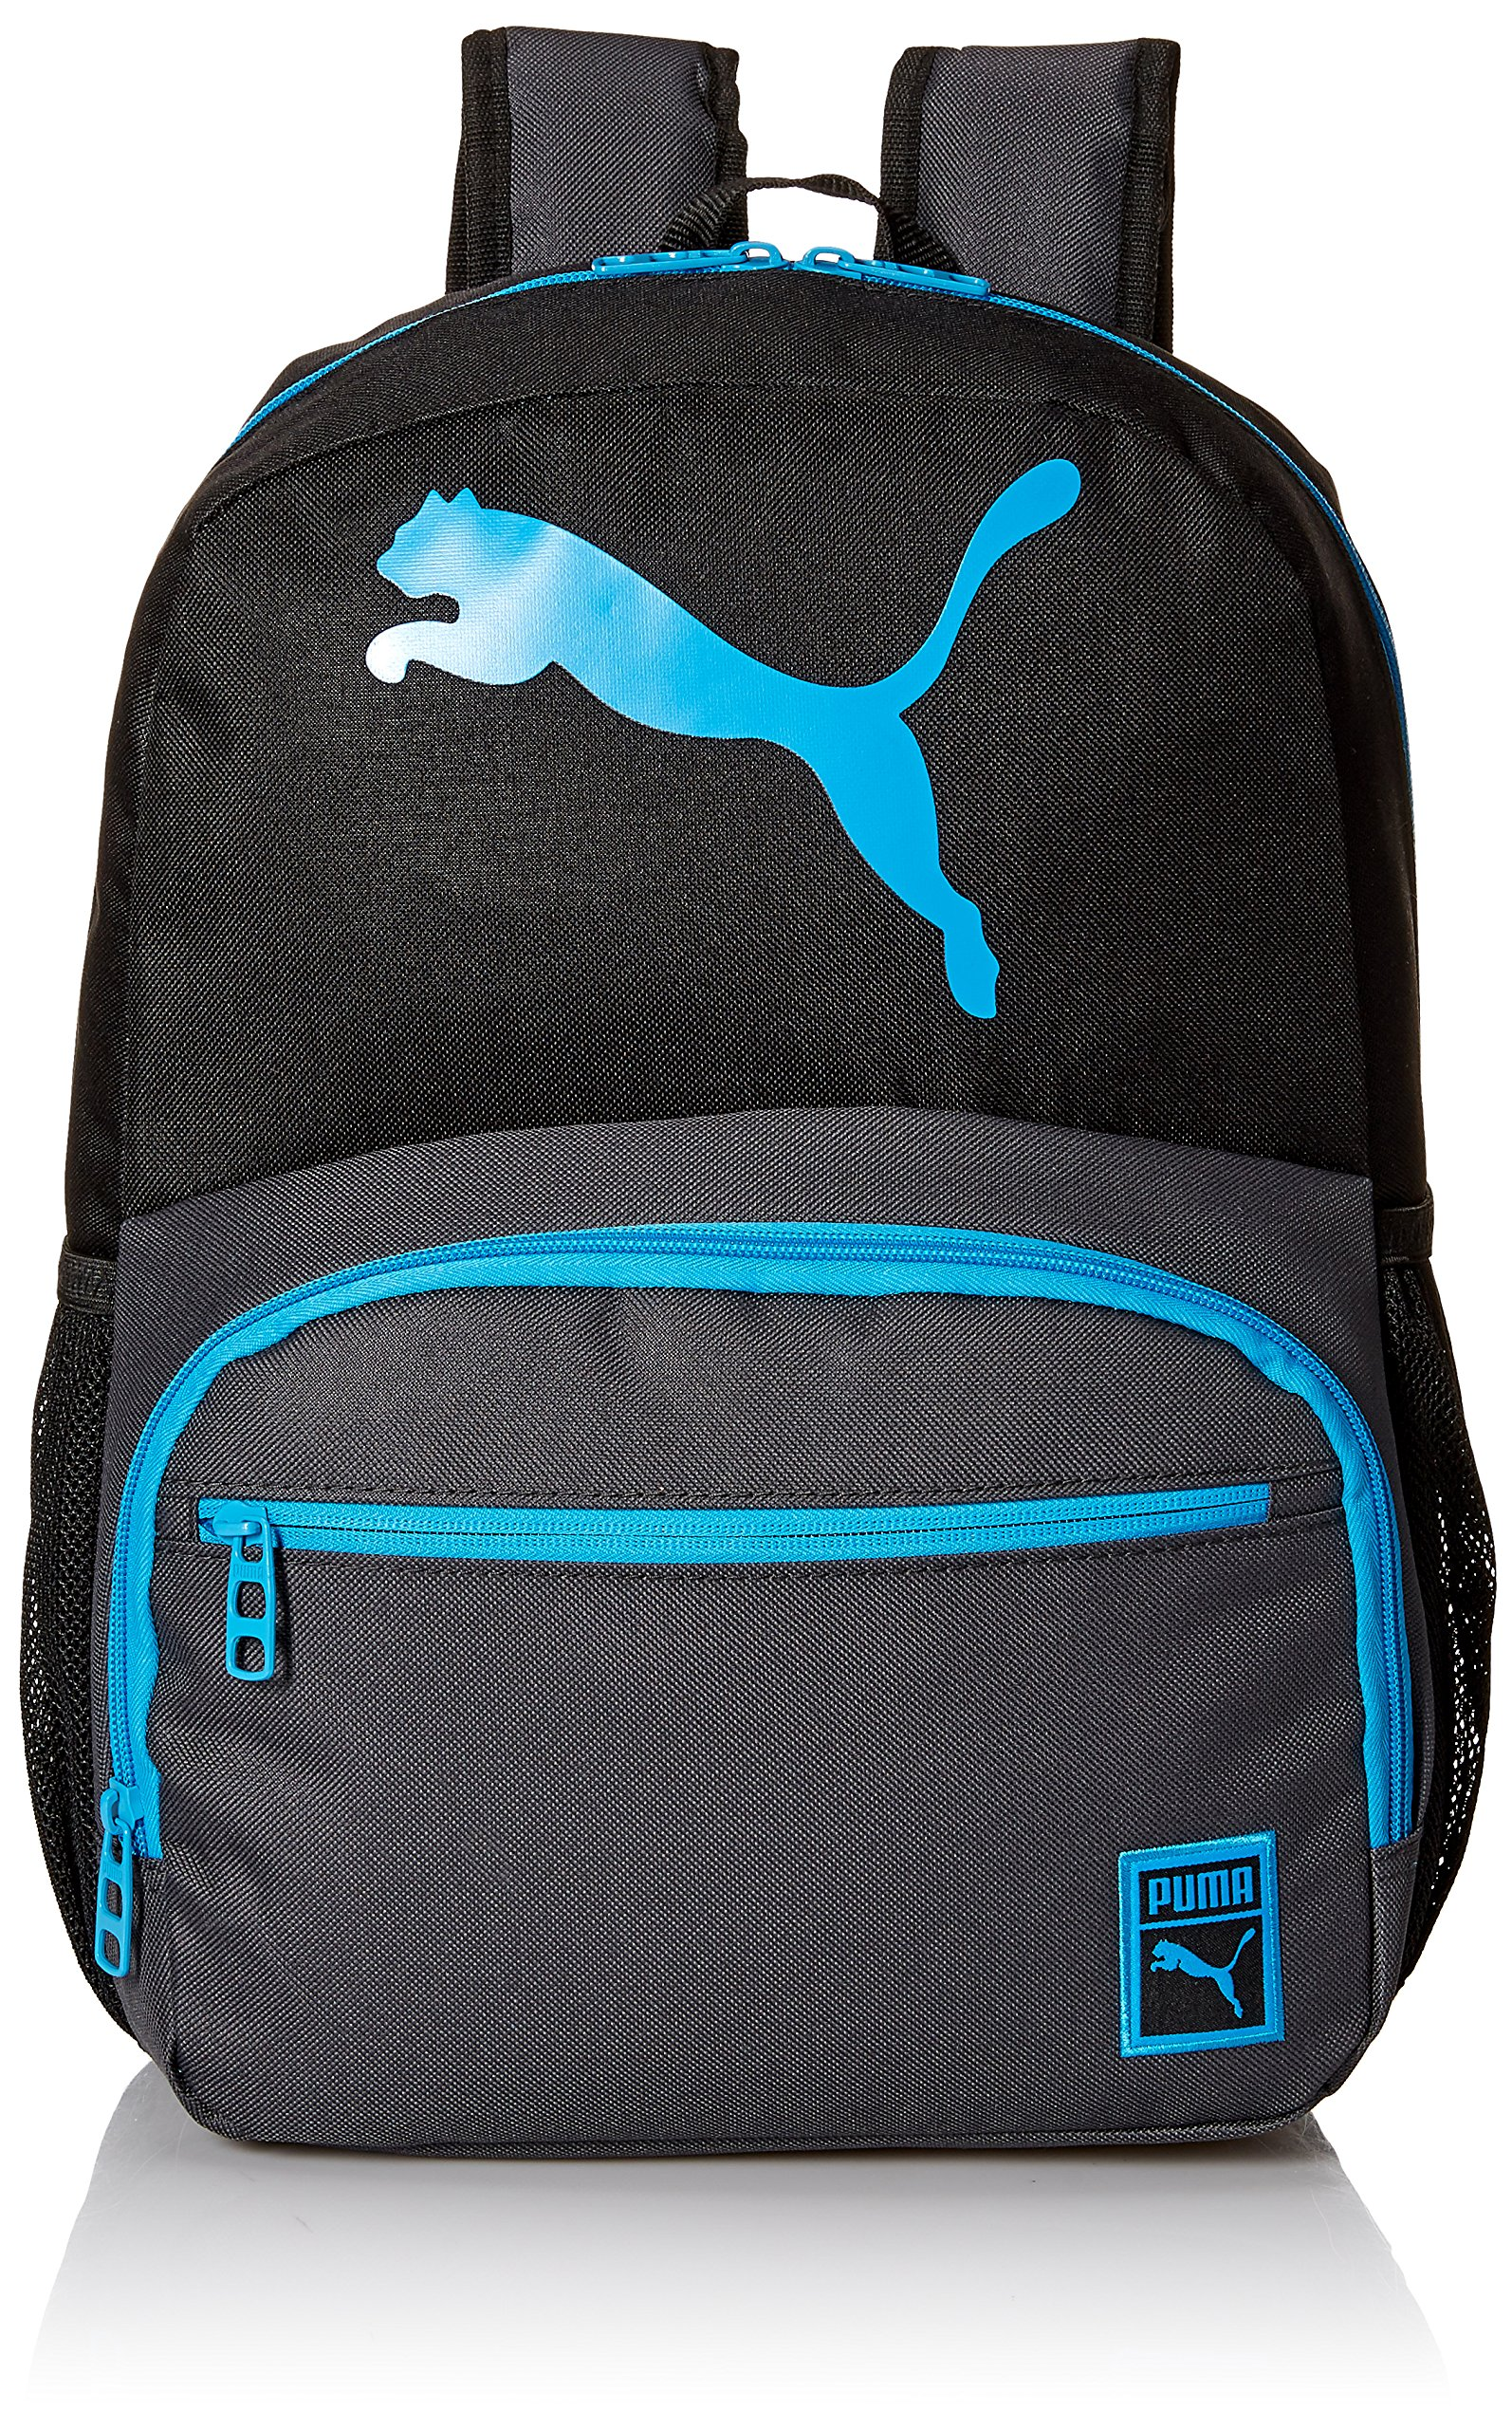 21aed2d8b5ce PUMA Little Boys' Backpacks and Lunch Boxes, Backpack Black/Blue, Youth